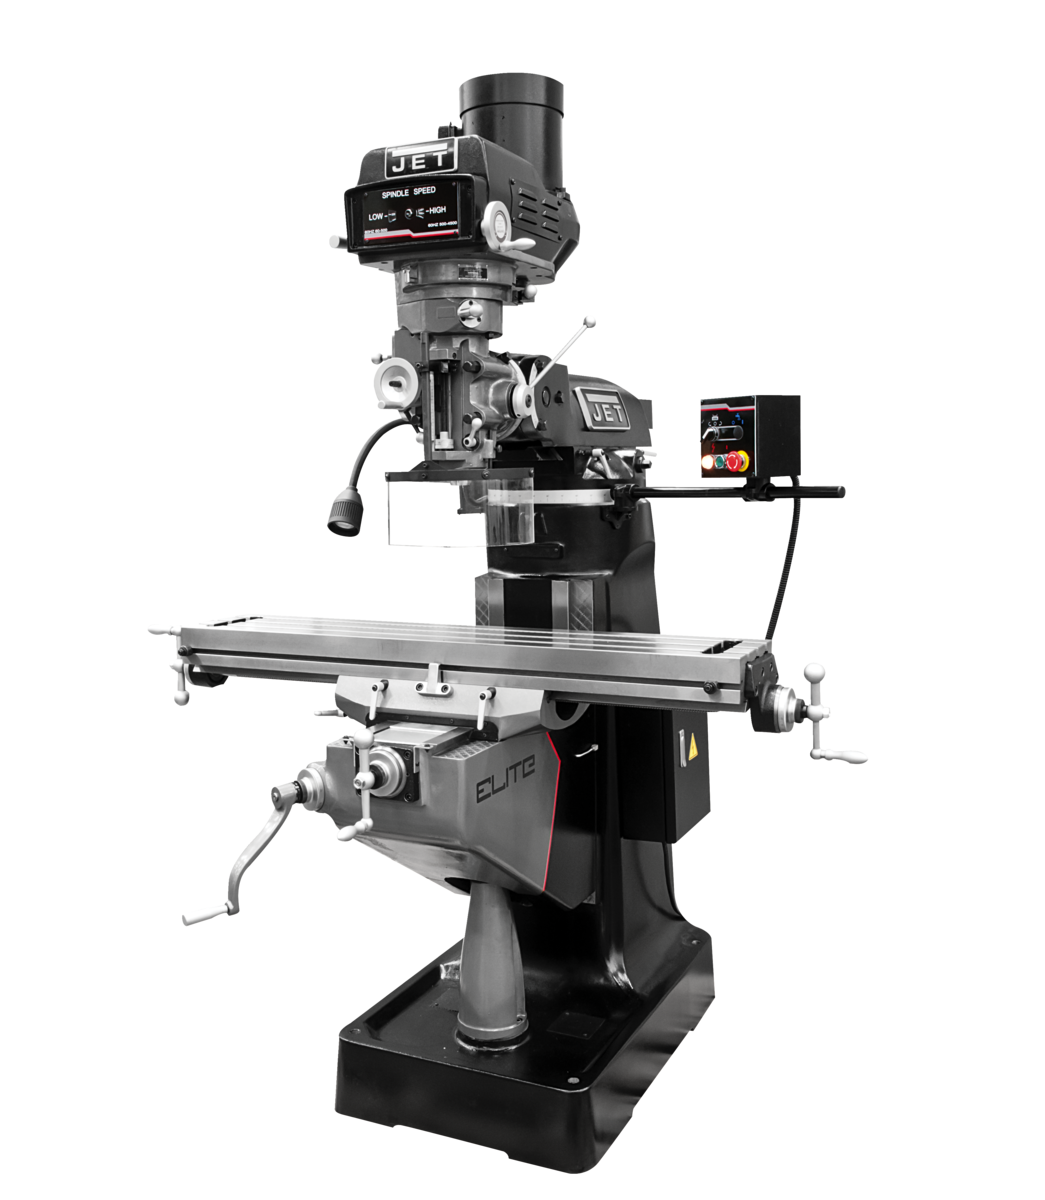 ETM-949 Mill with 2-Axis ACU-RITE 303  DRO and Servo X-Axis Powerfeed and USA Air Powered Draw Bar